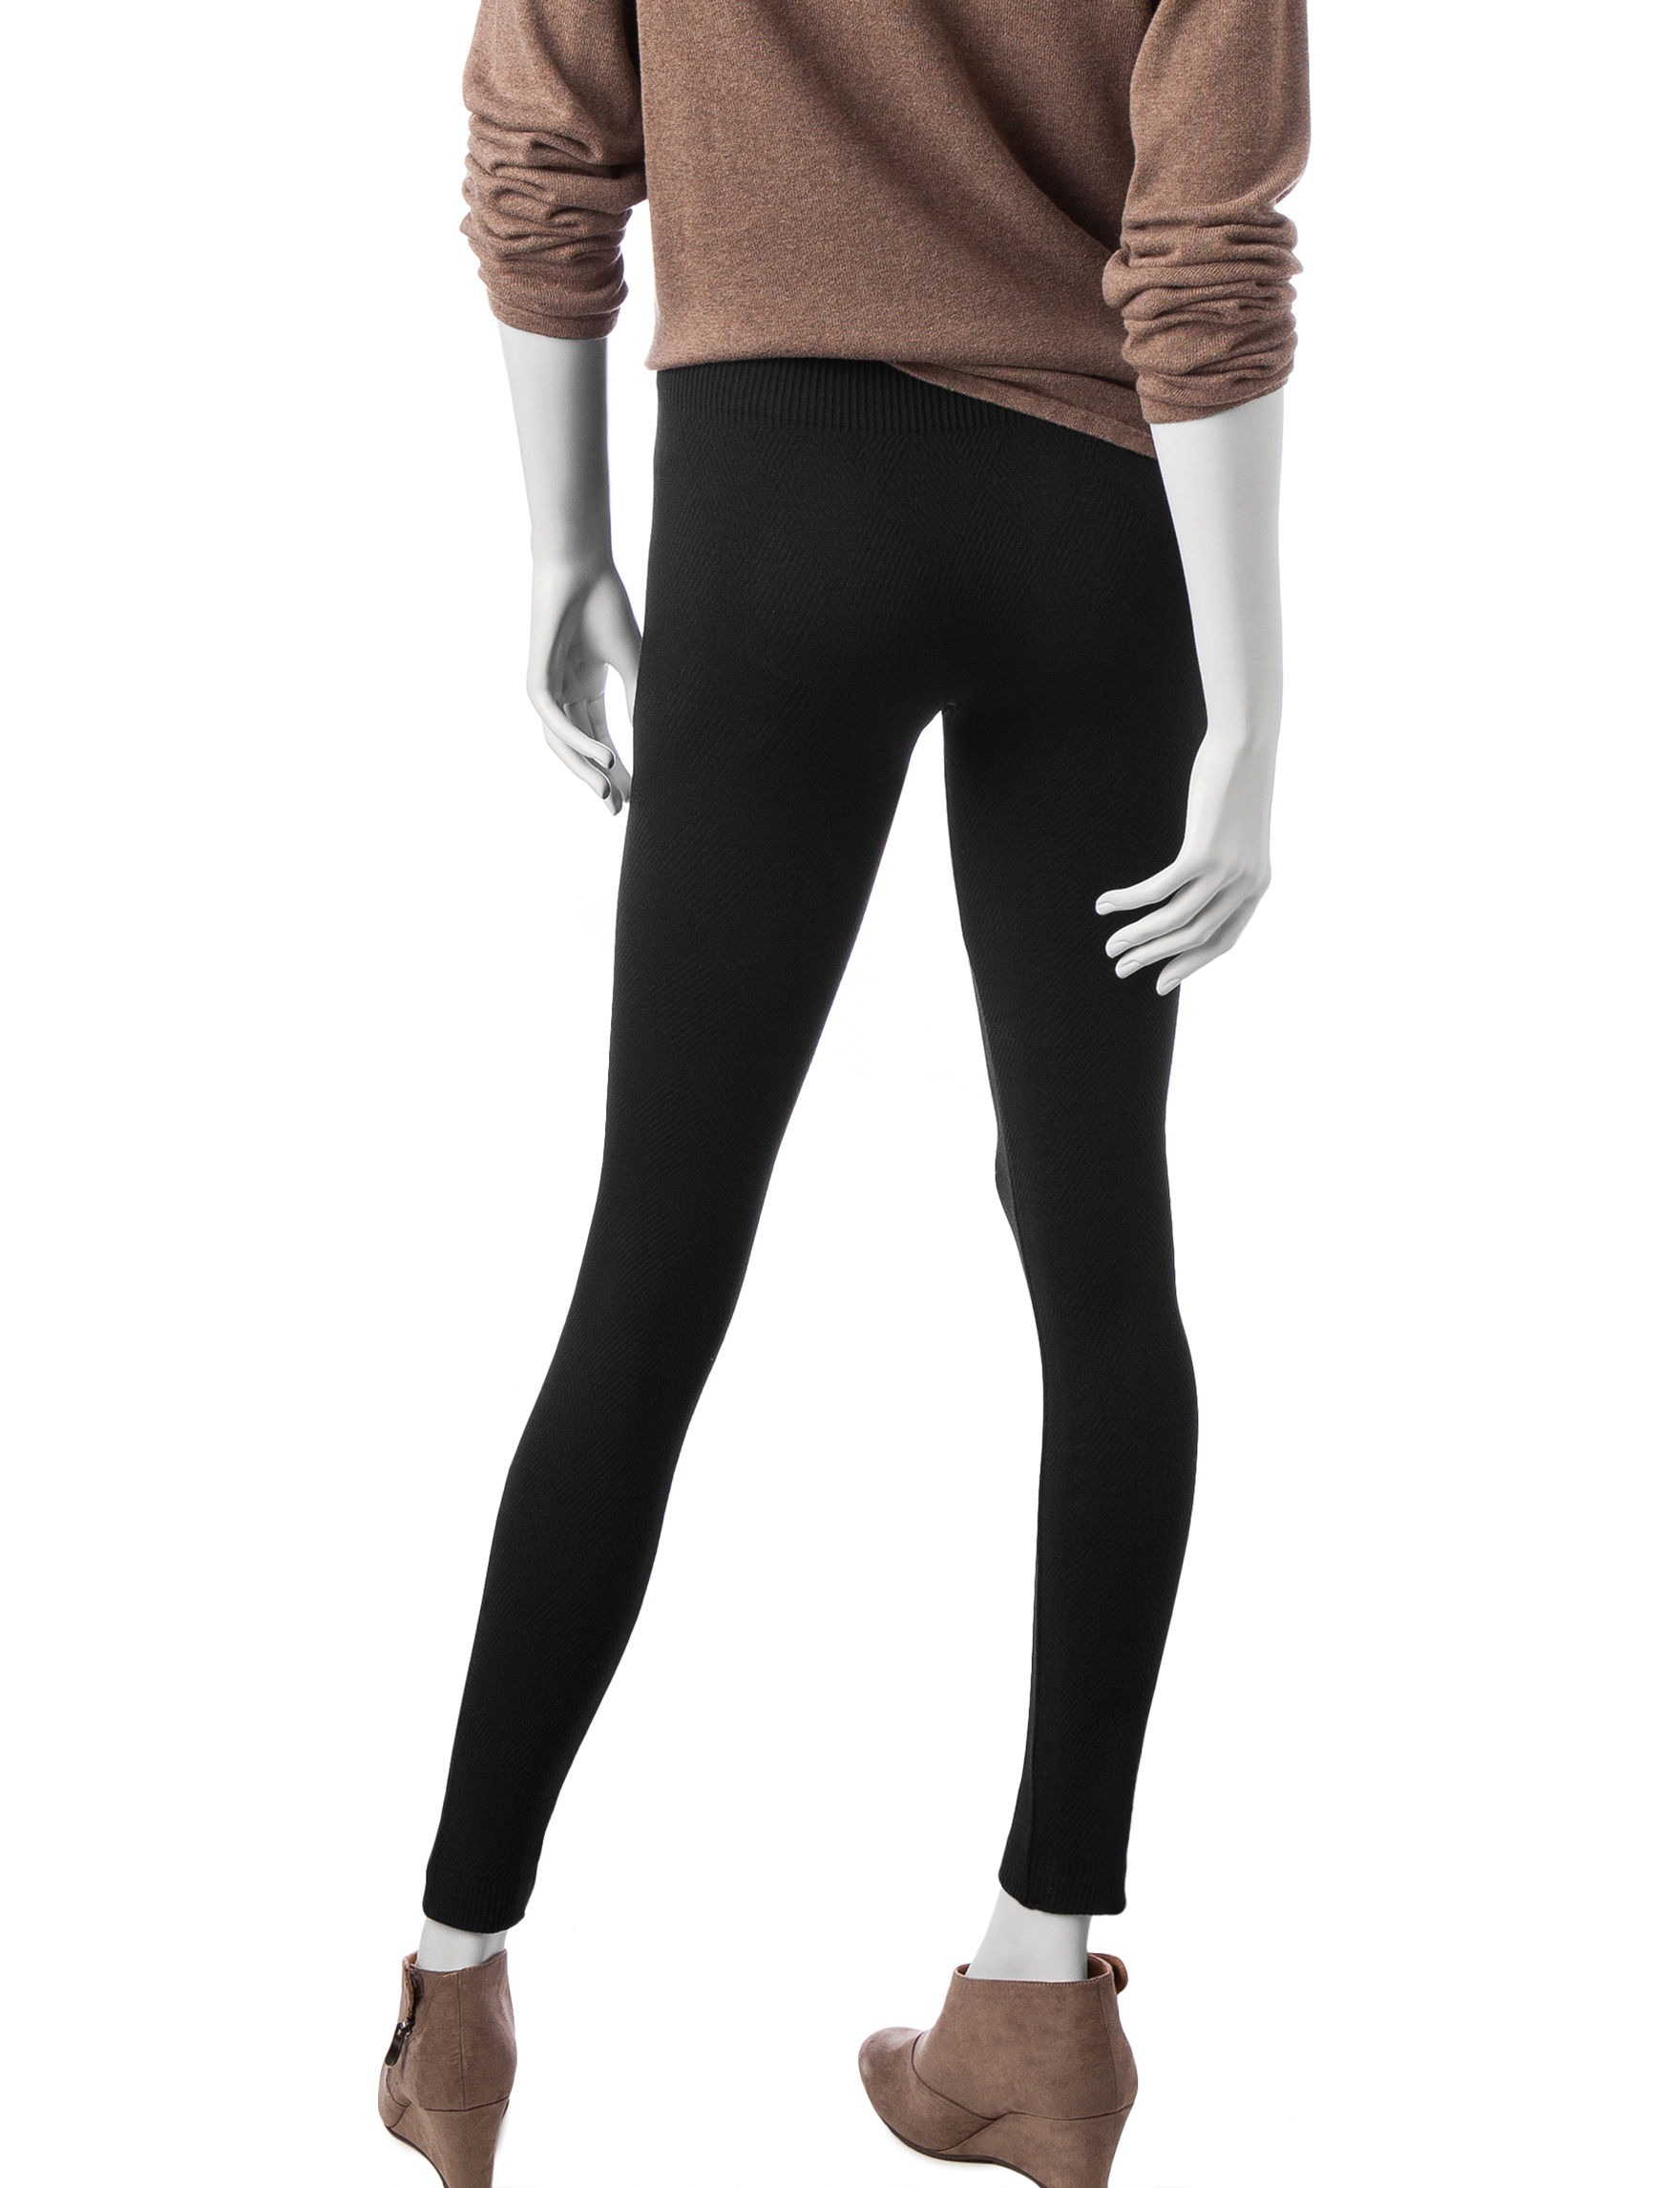 a34d8120389397 One 5 One Women's Textured Fleece Lined Leggings | Stage Stores